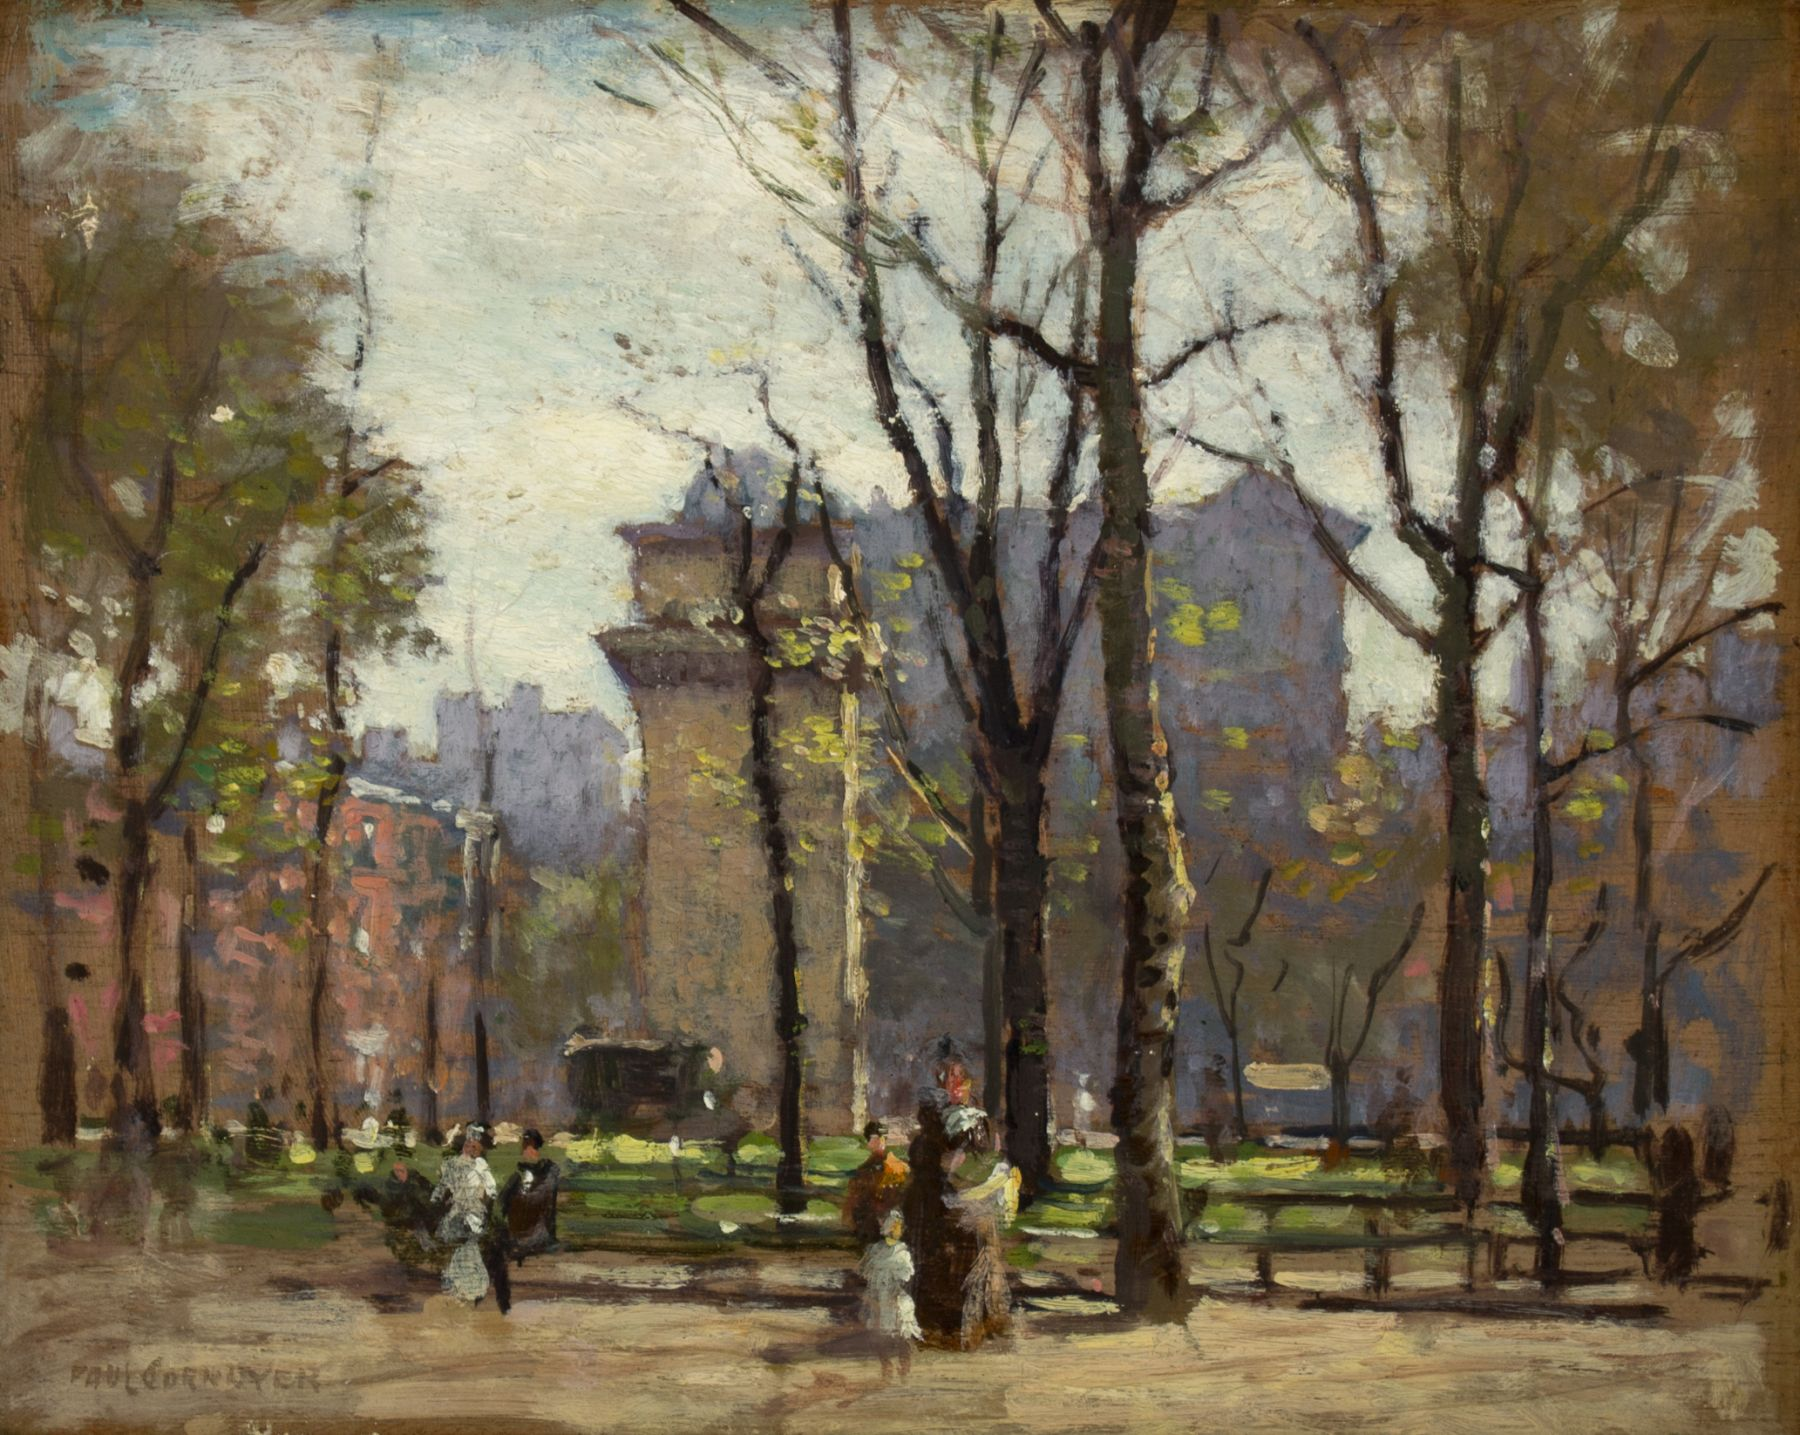 Paul Cornoyer, Washington Square Park